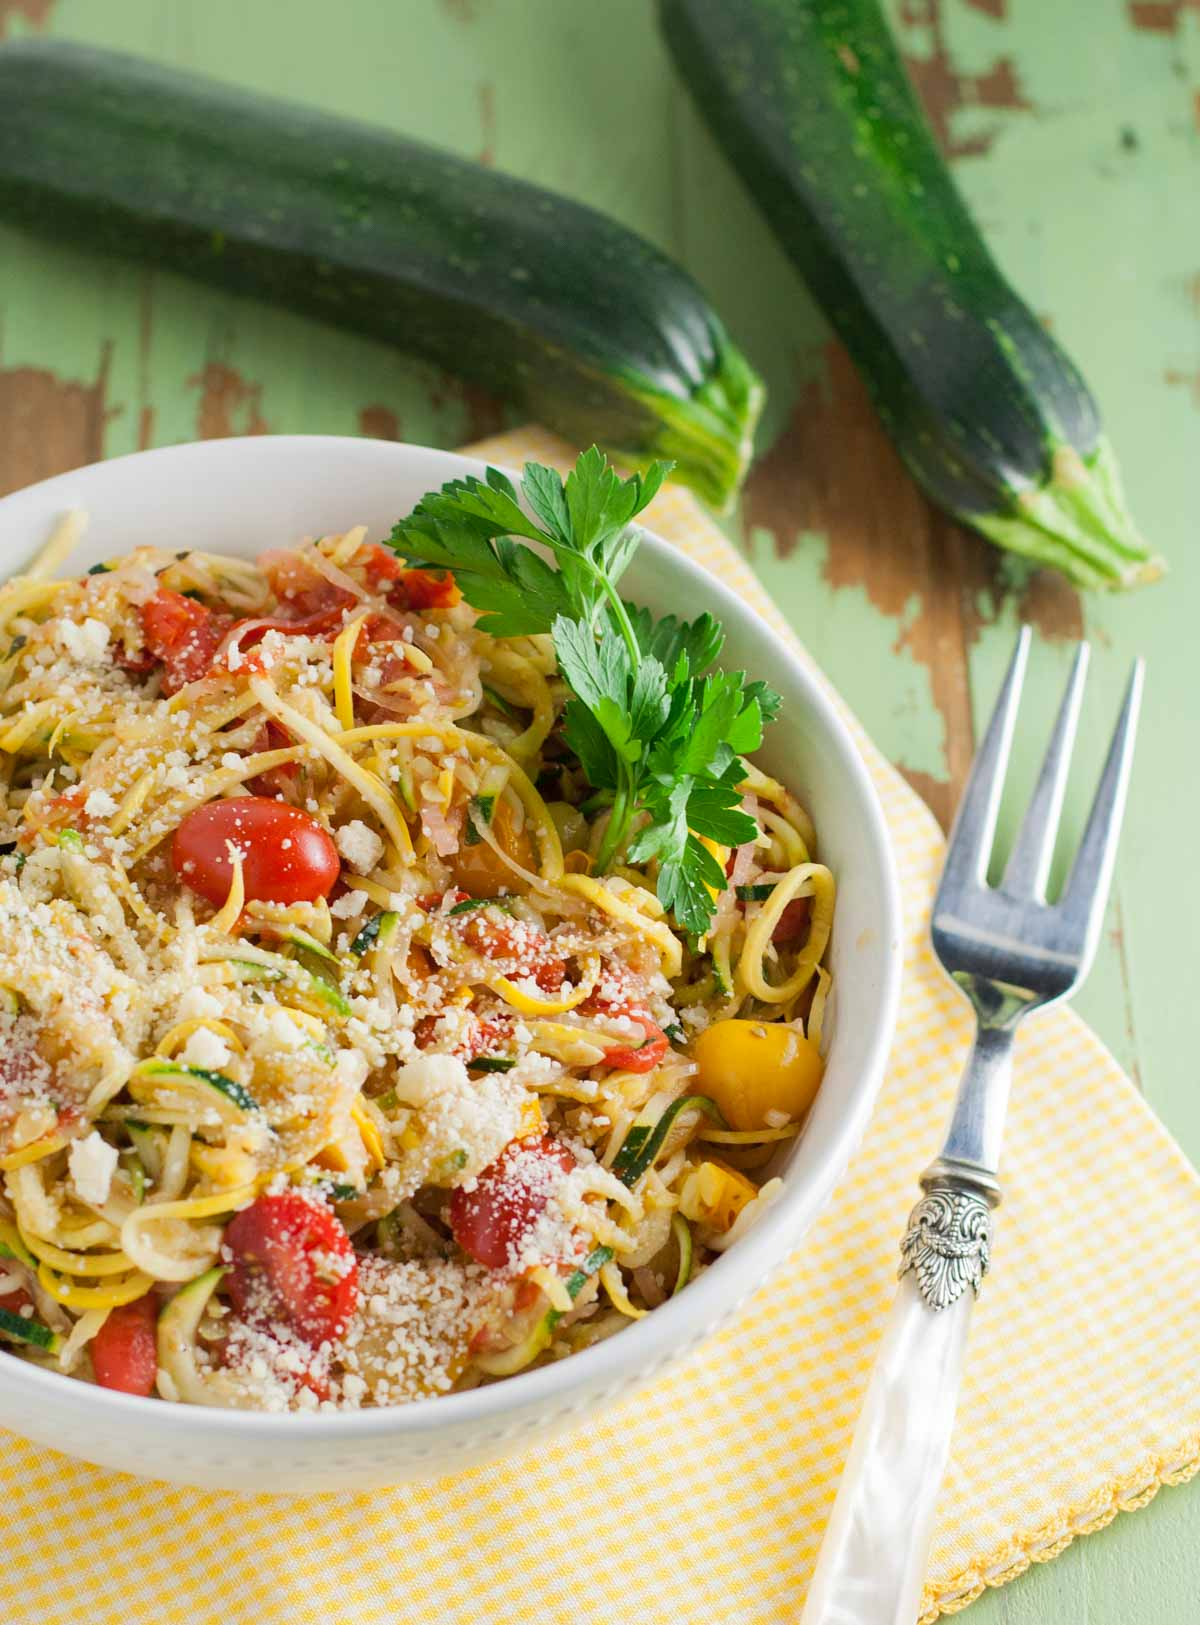 Zucchini Noodles with White Wine Sauce   WorldofPastabilities.com   Healthy and delicious zucchini and squash noodles make any meal colorful! as a main course or side dish - you will be amazed how a shape can transform a veggie! Even the kids raved!